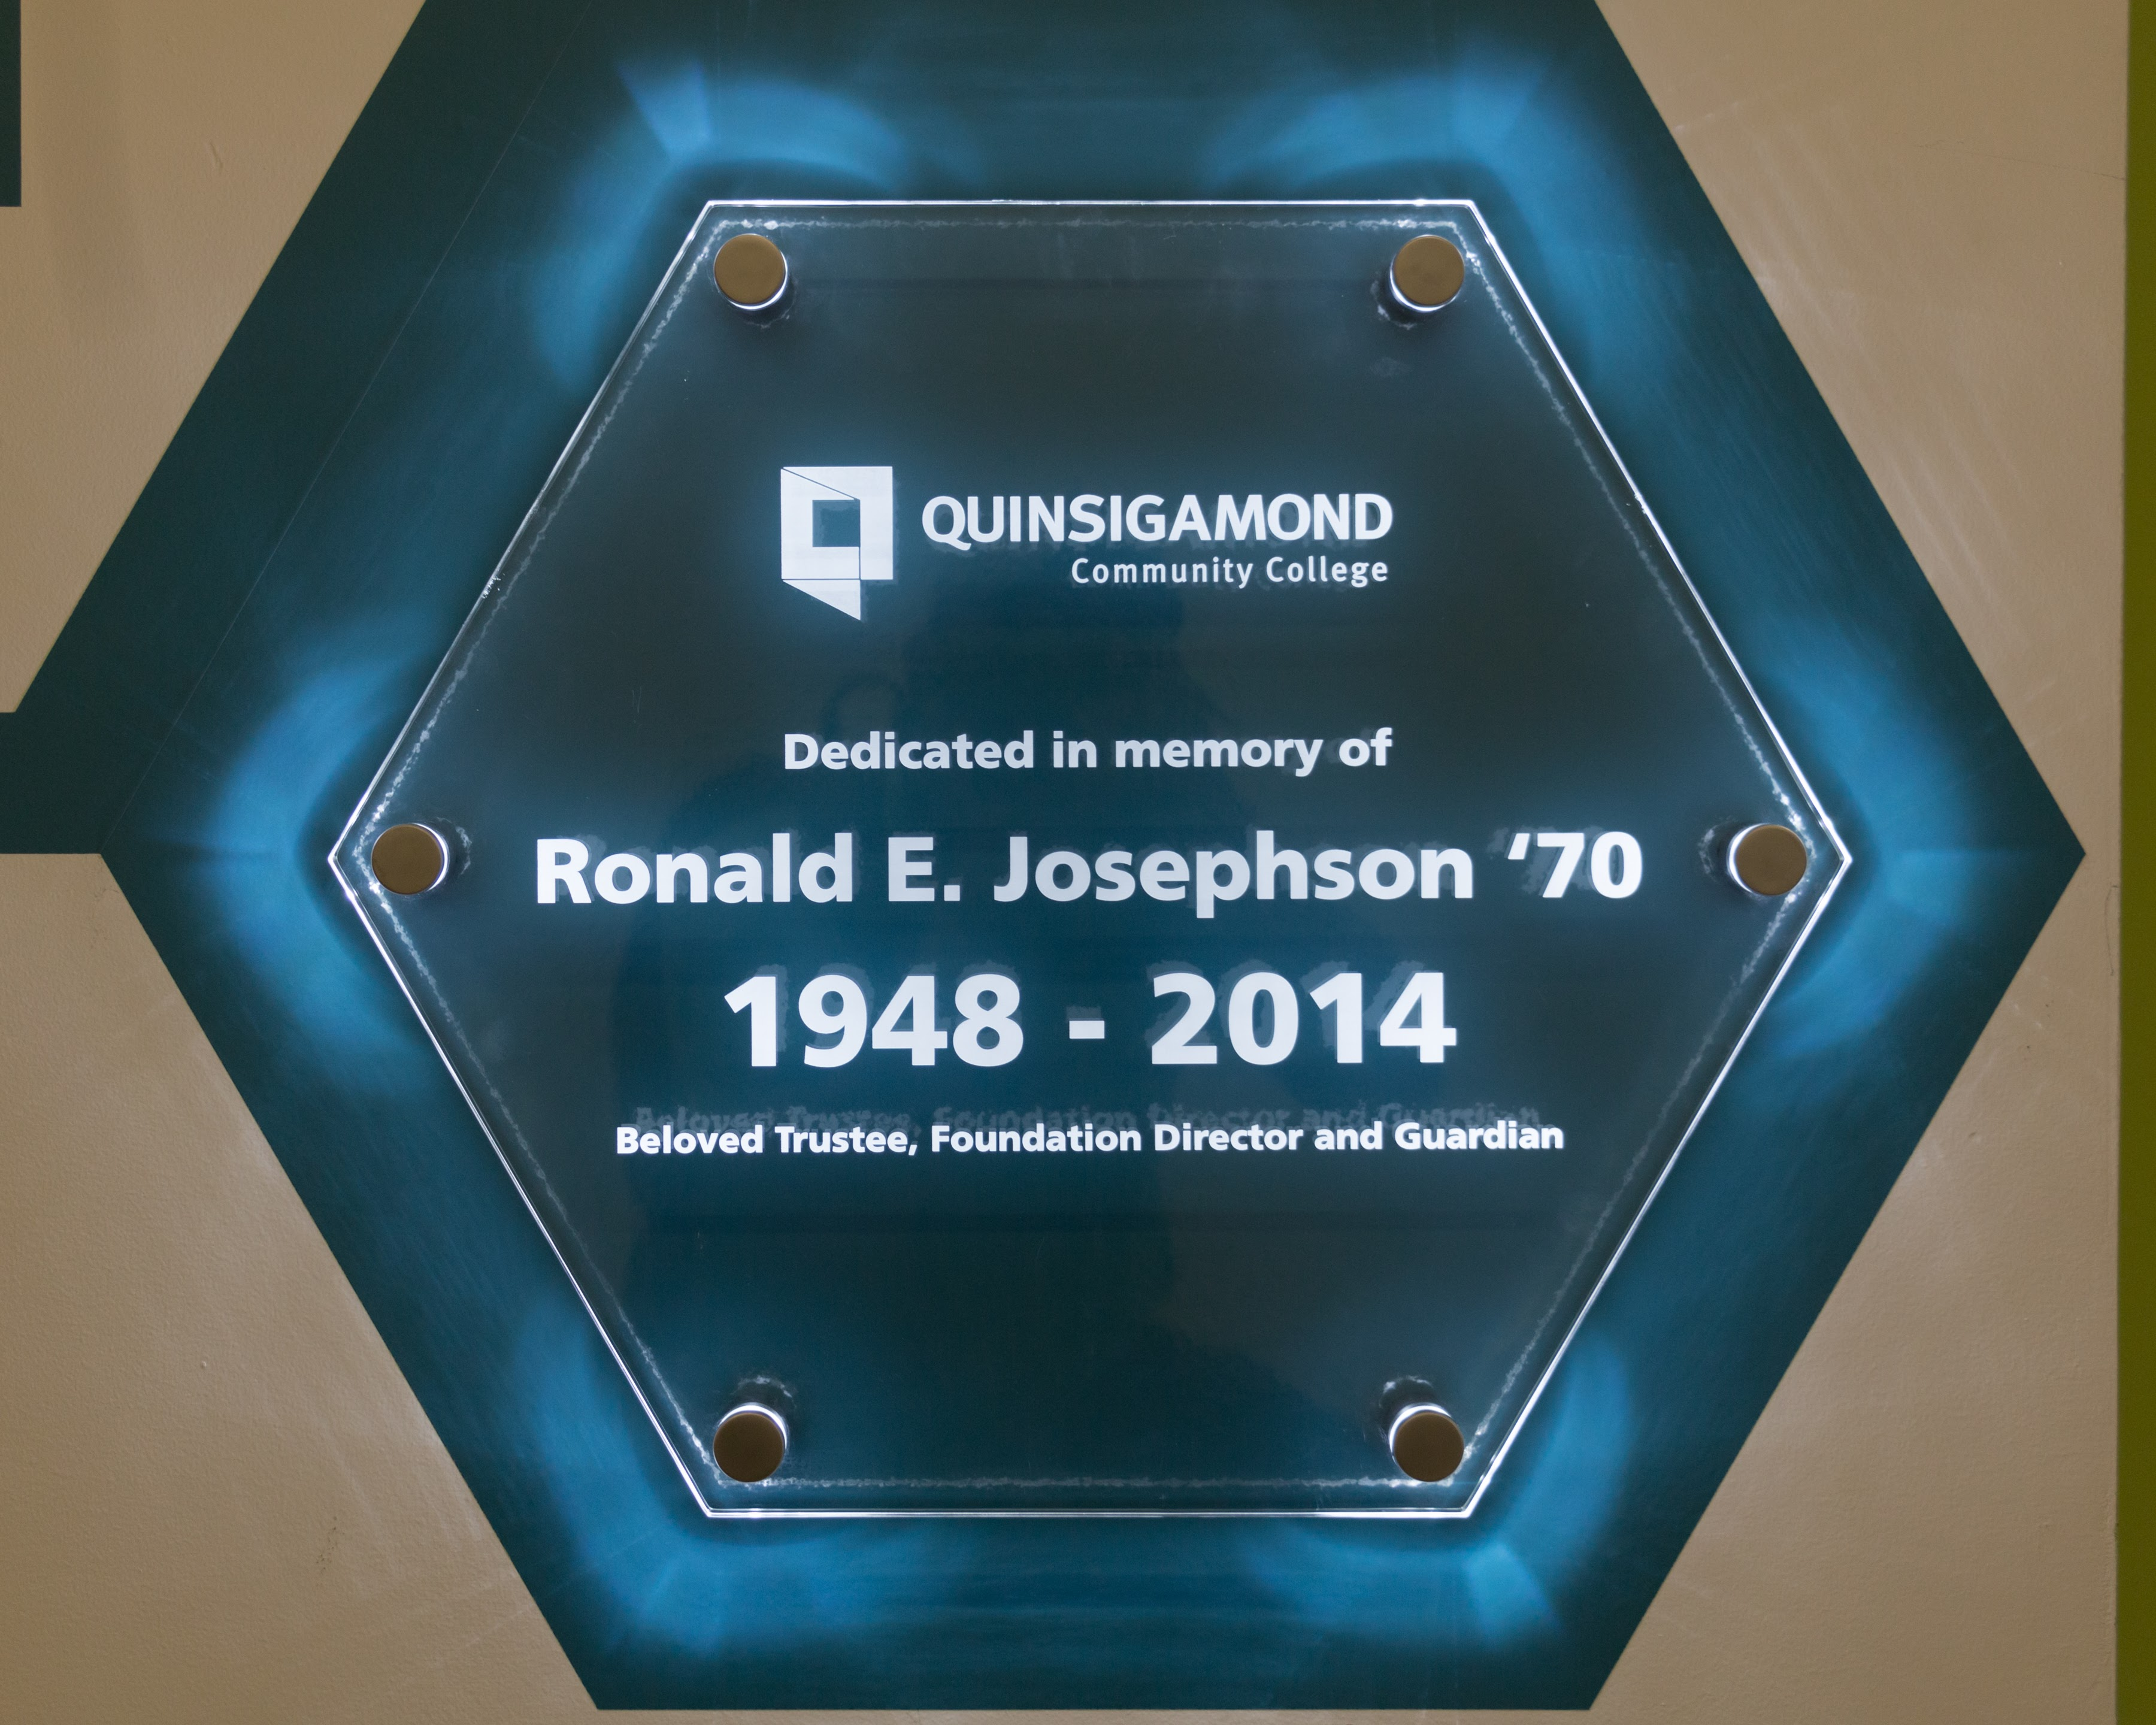 He Later Worked At Digital Equipment Corporation And Preferred Electronics  In Senior Management Positions Mr Josephson Was Also A Member Of The  College's